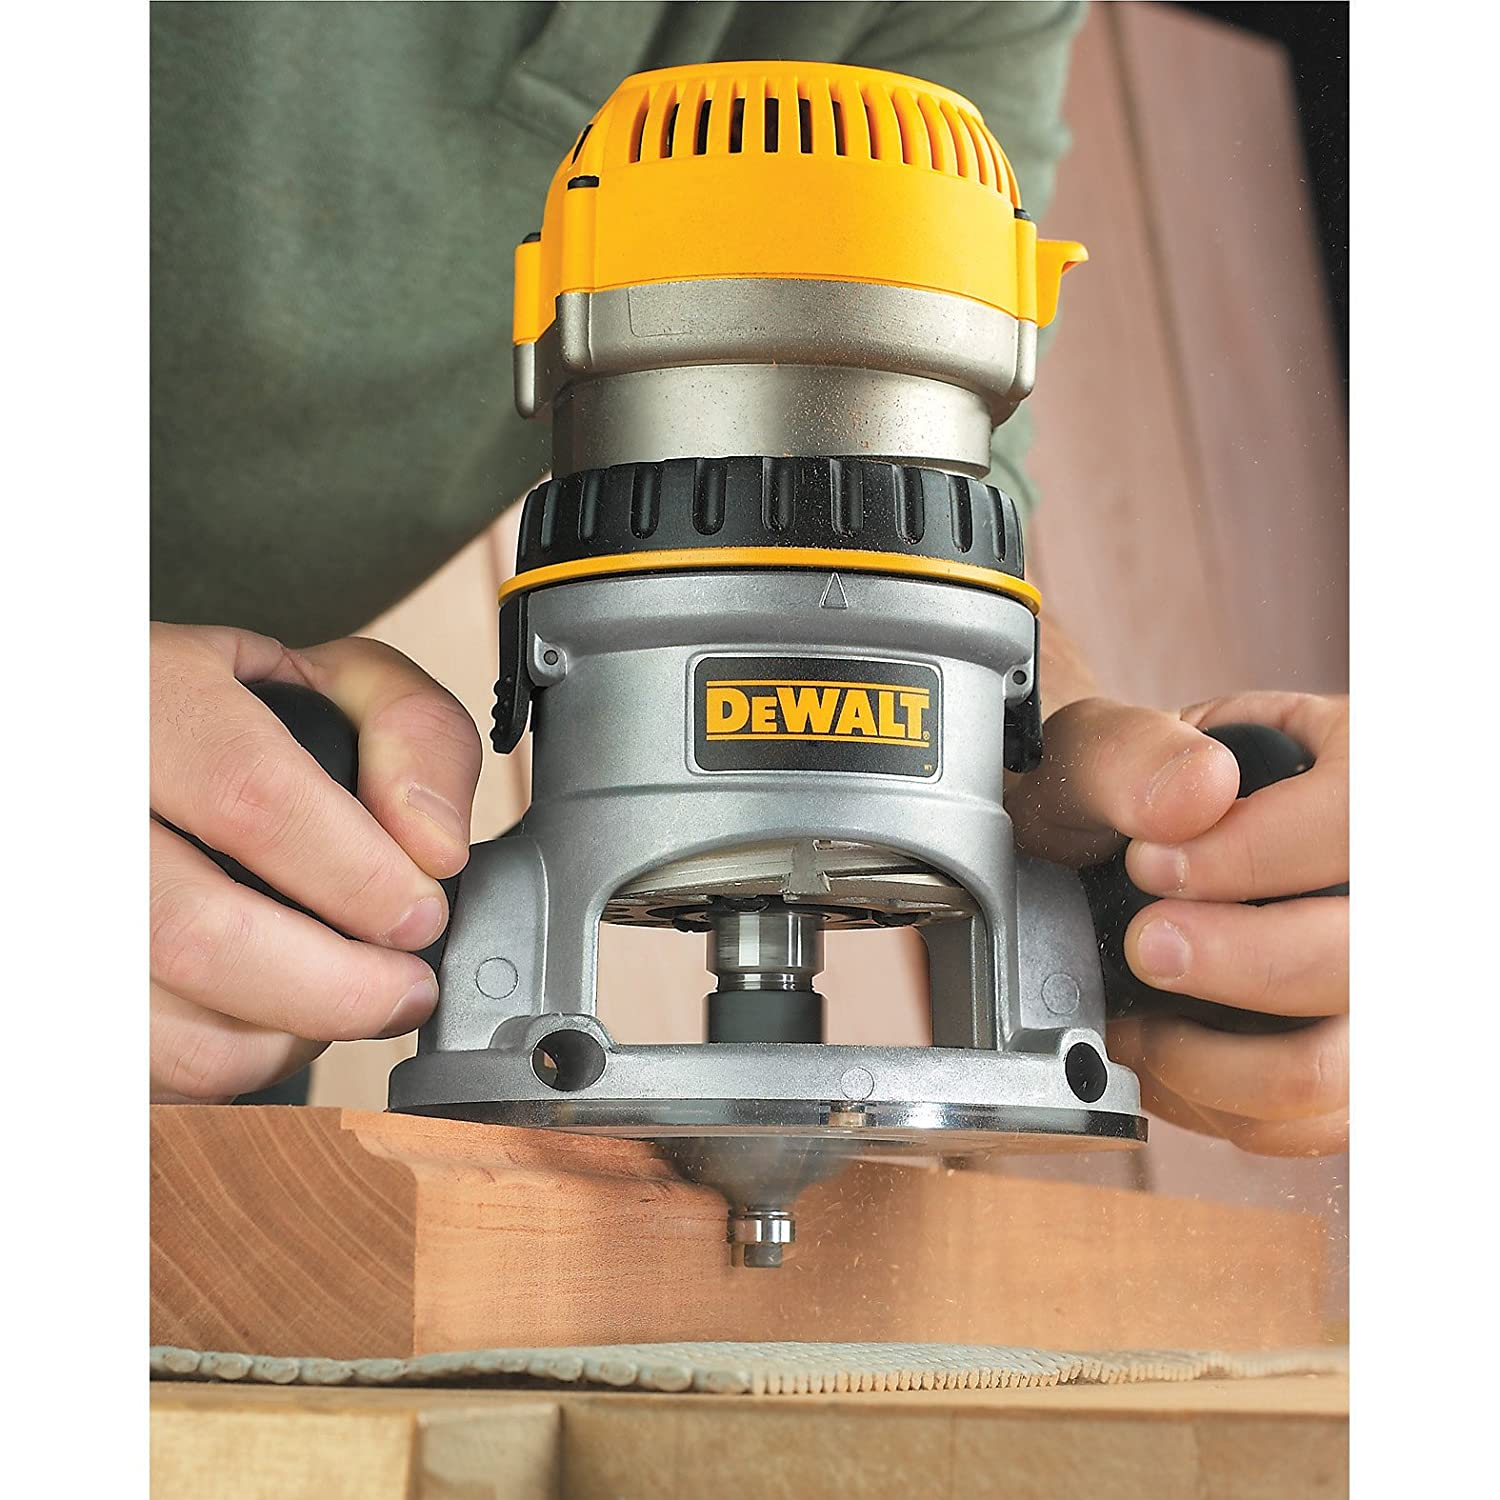 Dewalt dw616 1 34 horsepower fixed base router dewalt dw616 keyboard keysfo Gallery